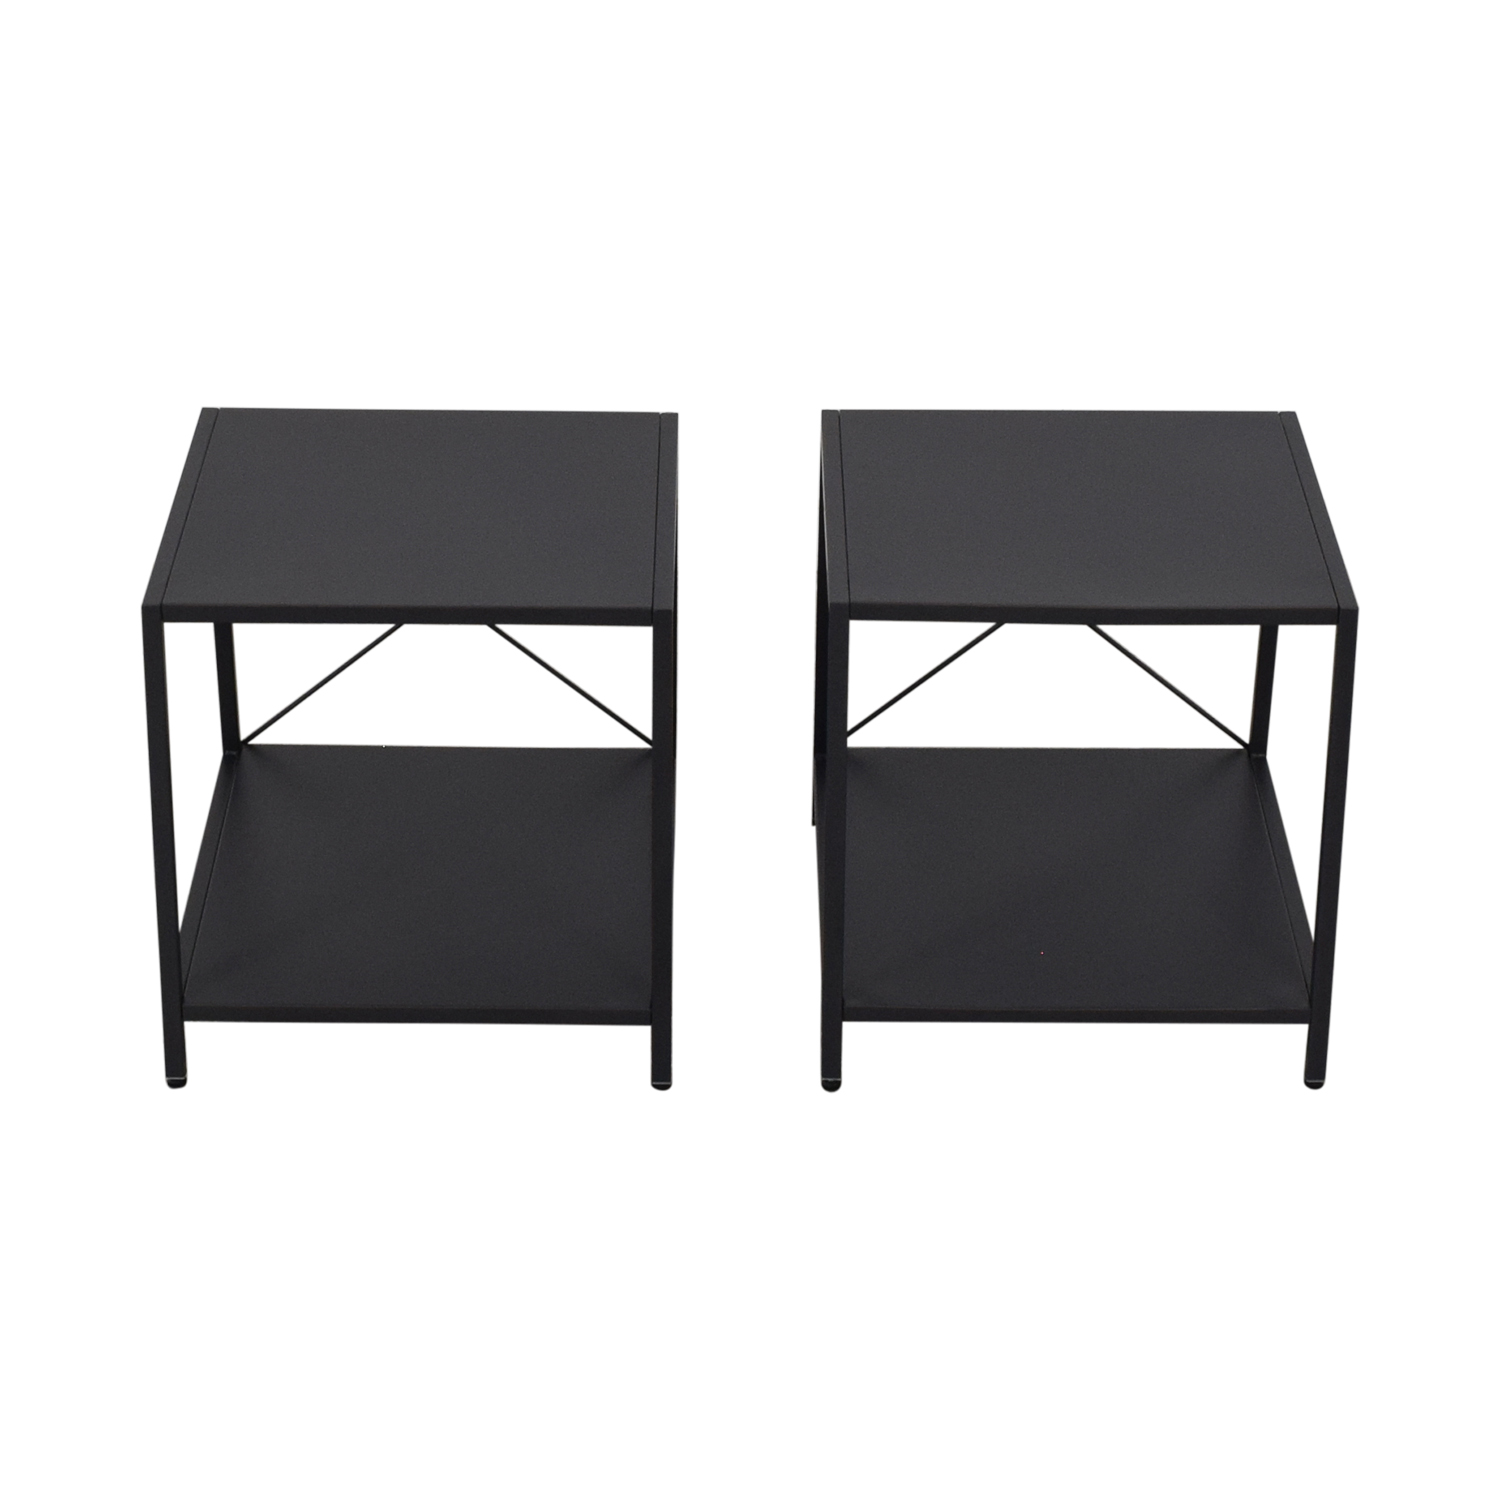 buy CB2 CB2 Harvey Gunmetal Nightstands online